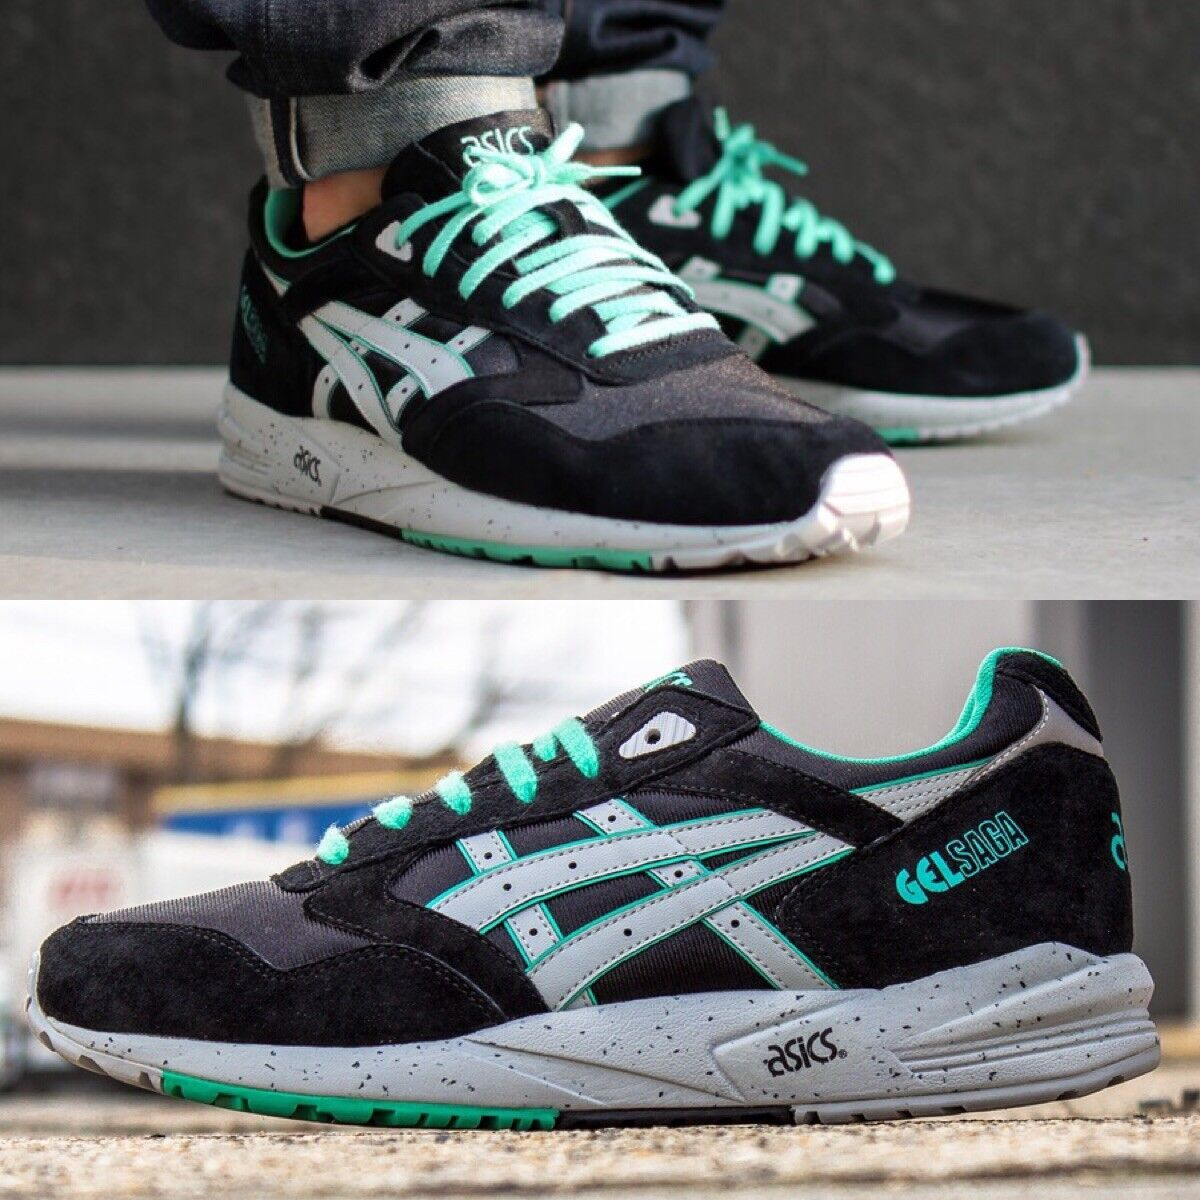 DS Asics Gel Saga Black Mint H137K, Size 13